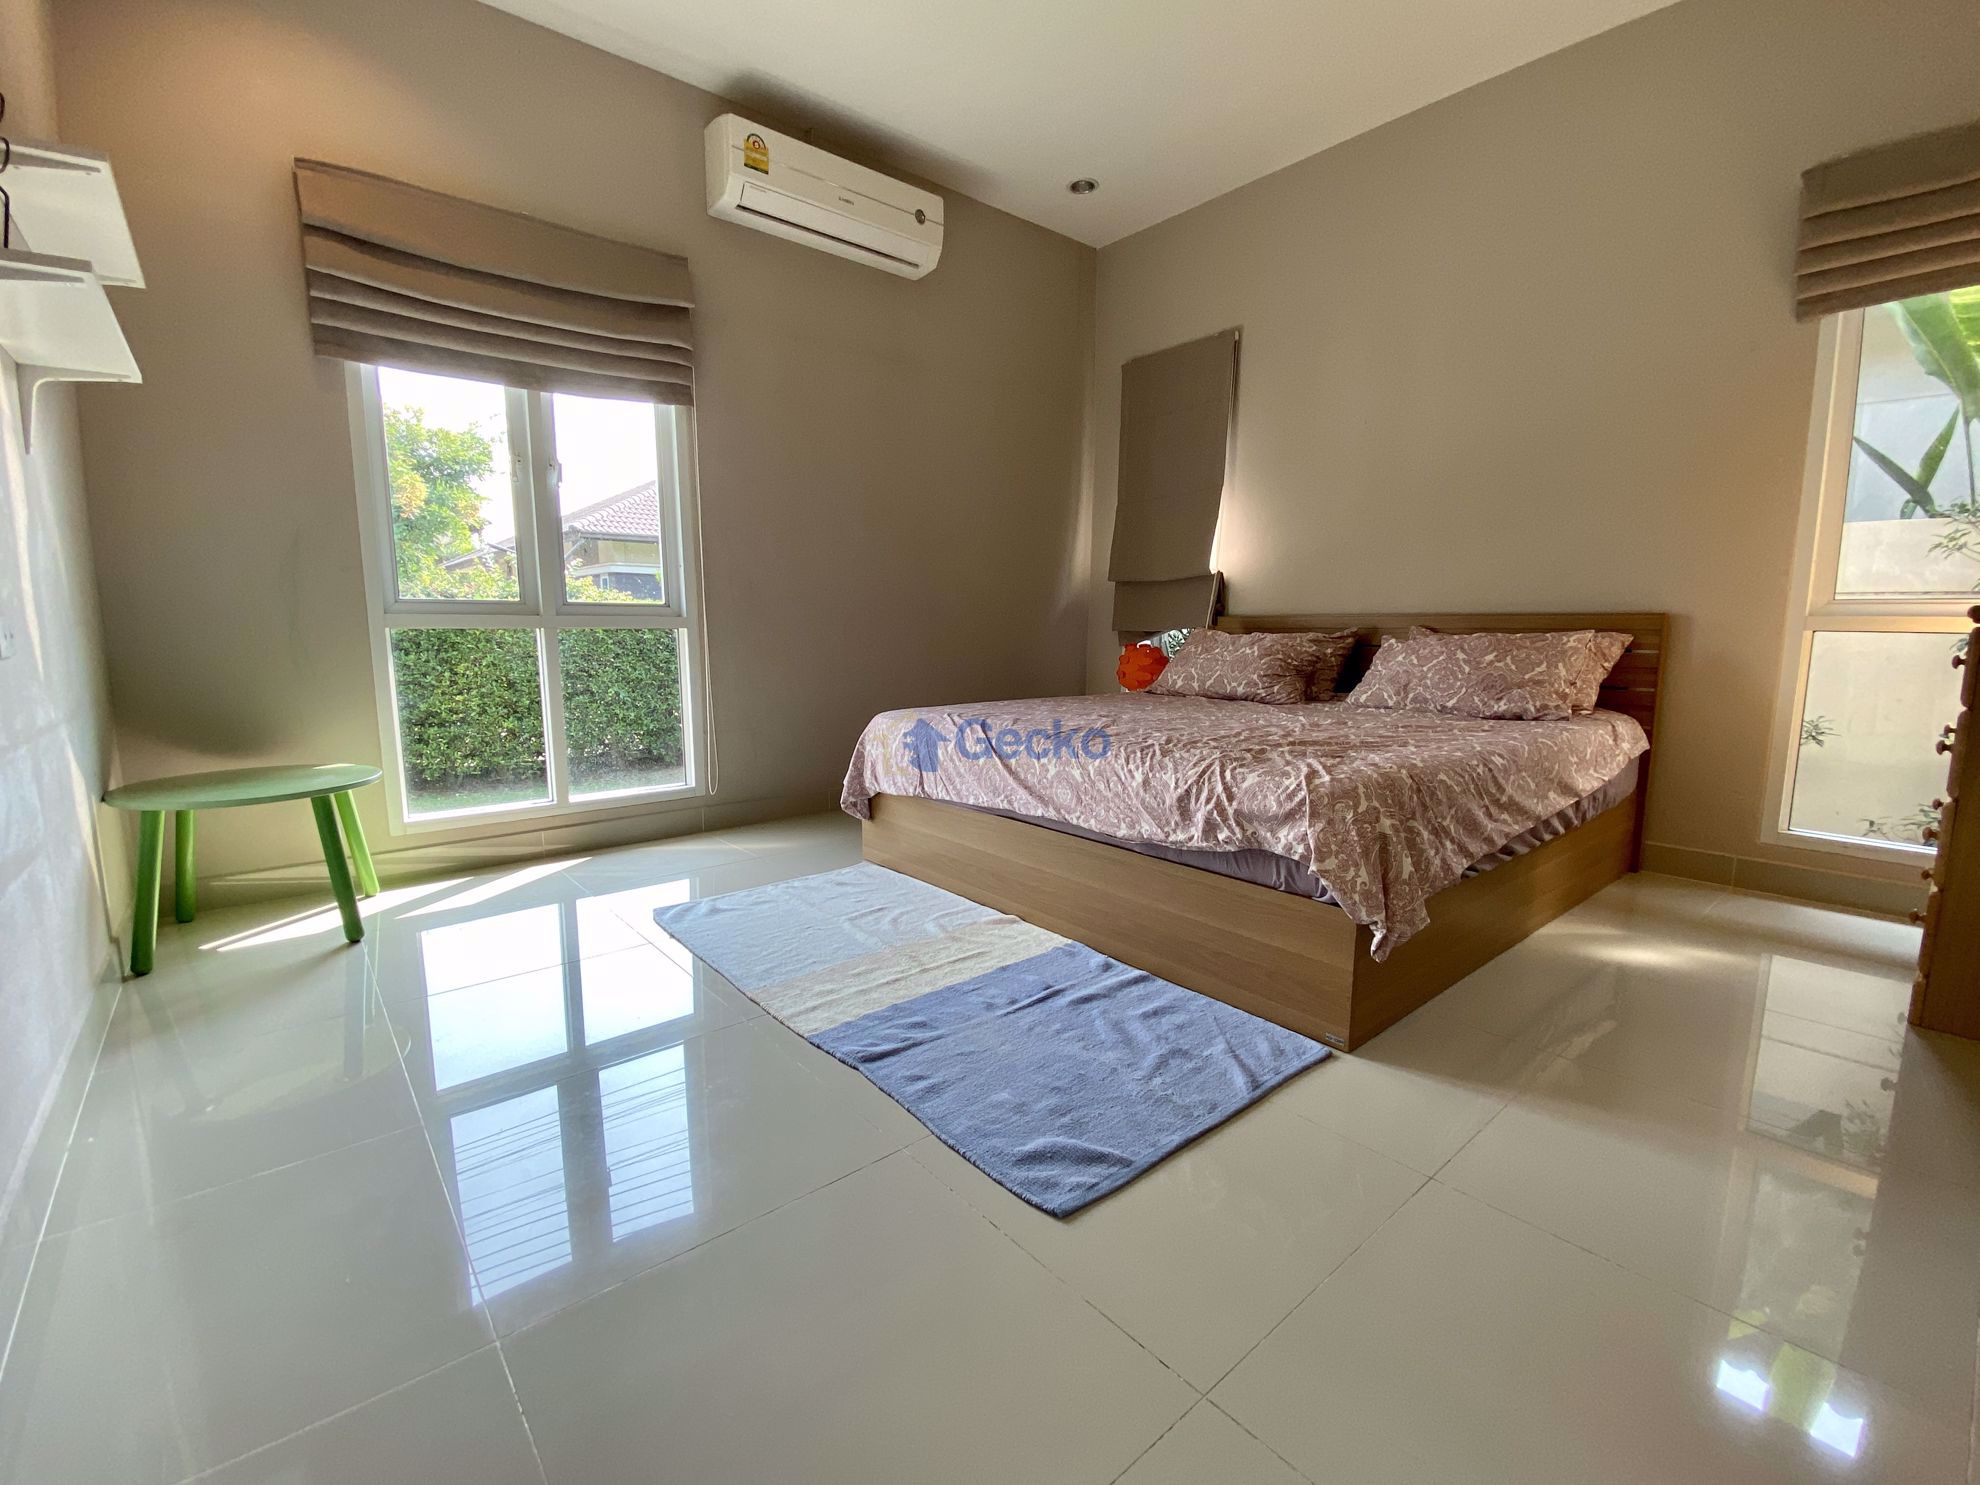 Picture of 3 Bedrooms bed in House in Panalee in Huay Yai H009122